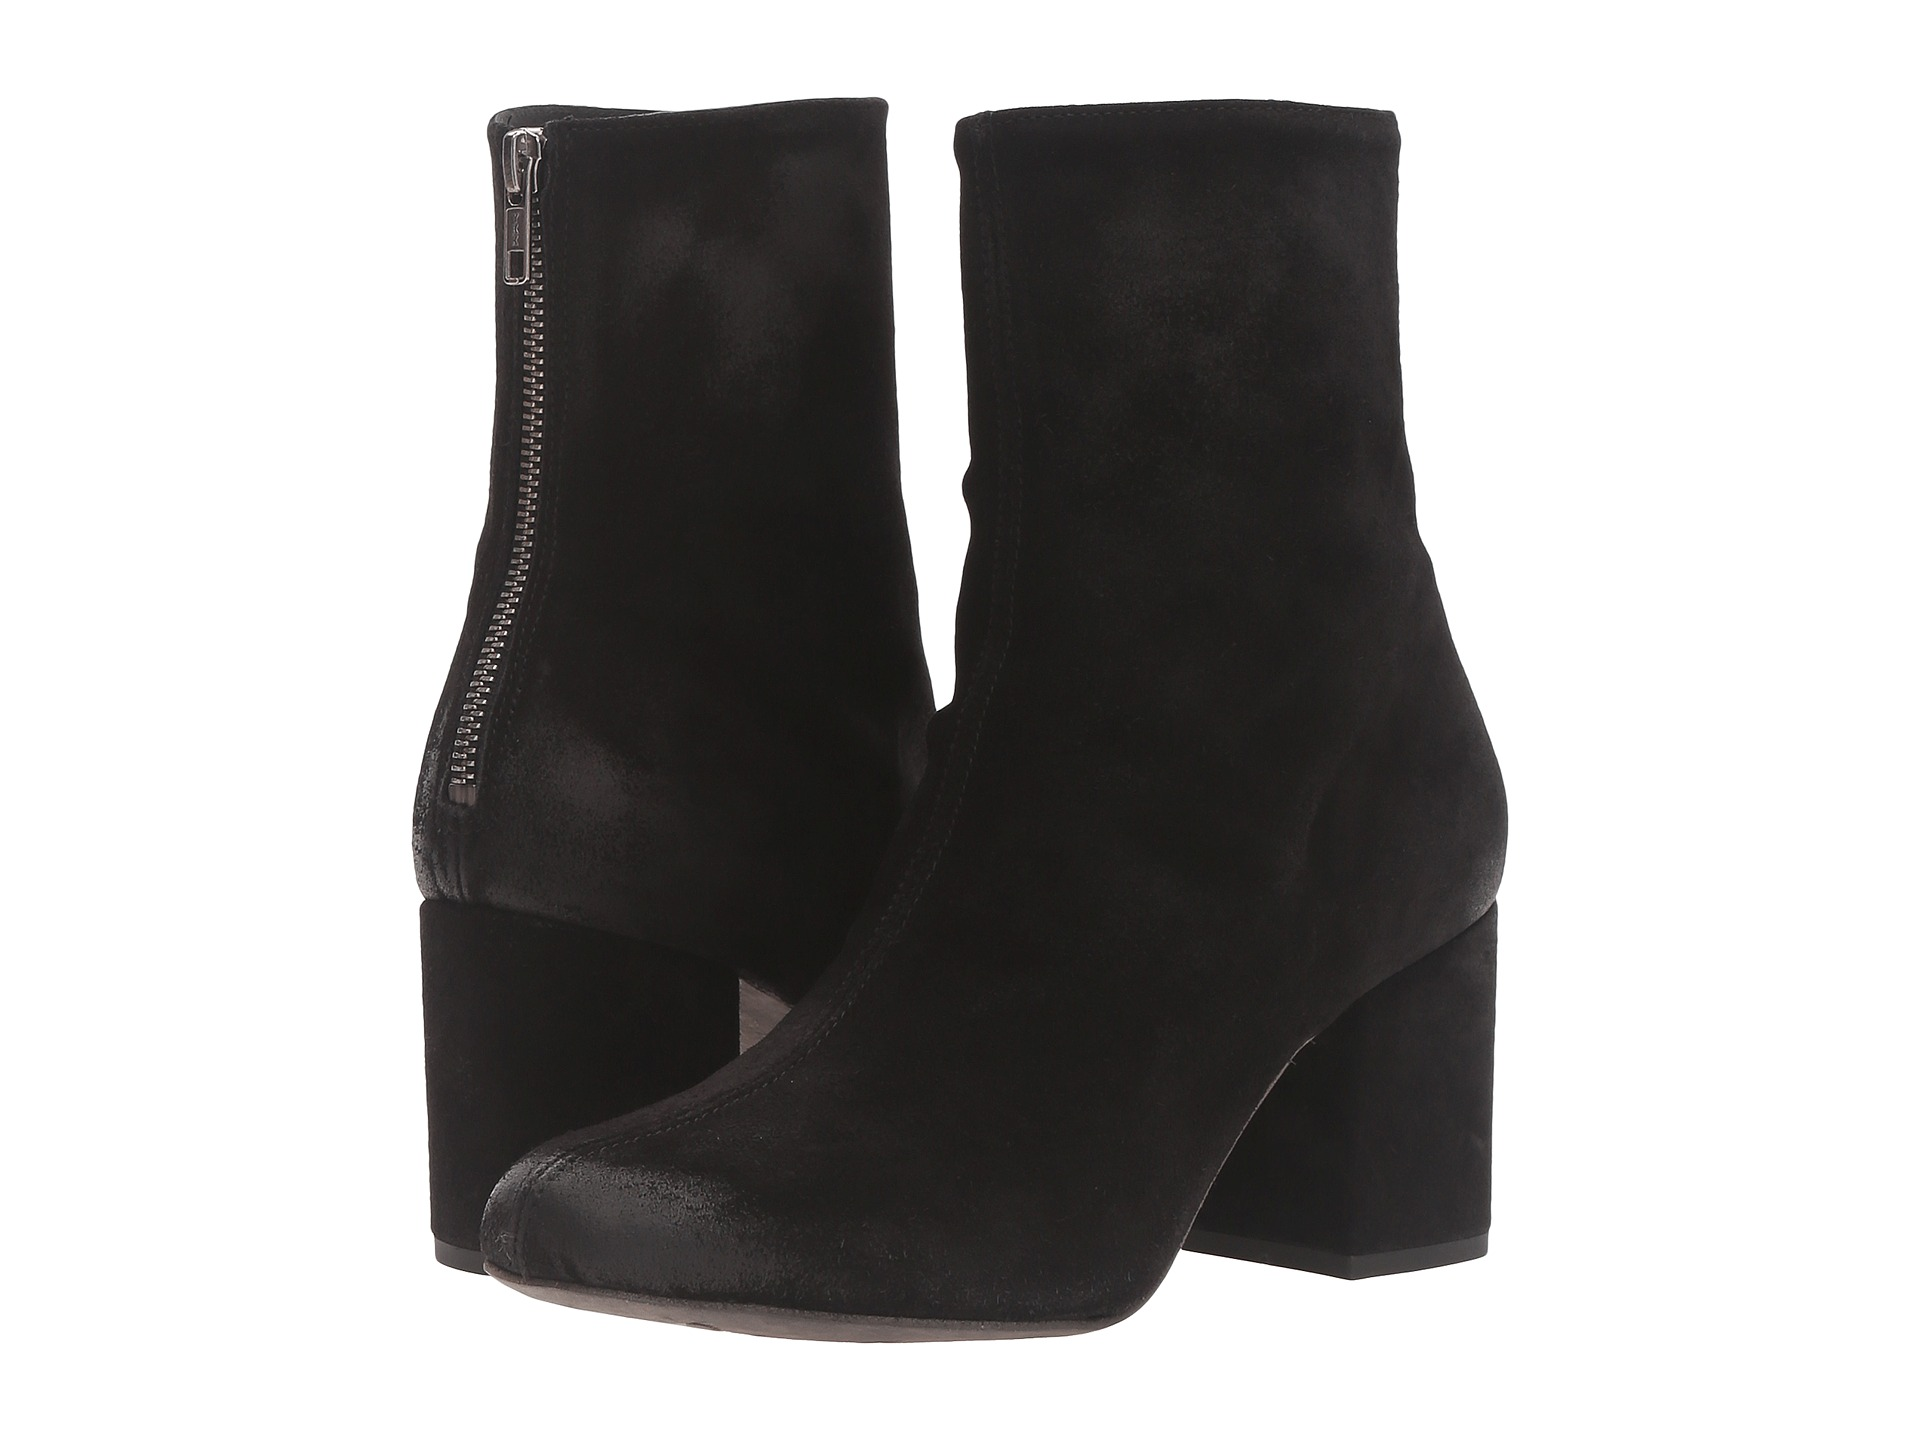 Free People Cecile Ankle Boot - Zappos.com Free Shipping BOTH Ways